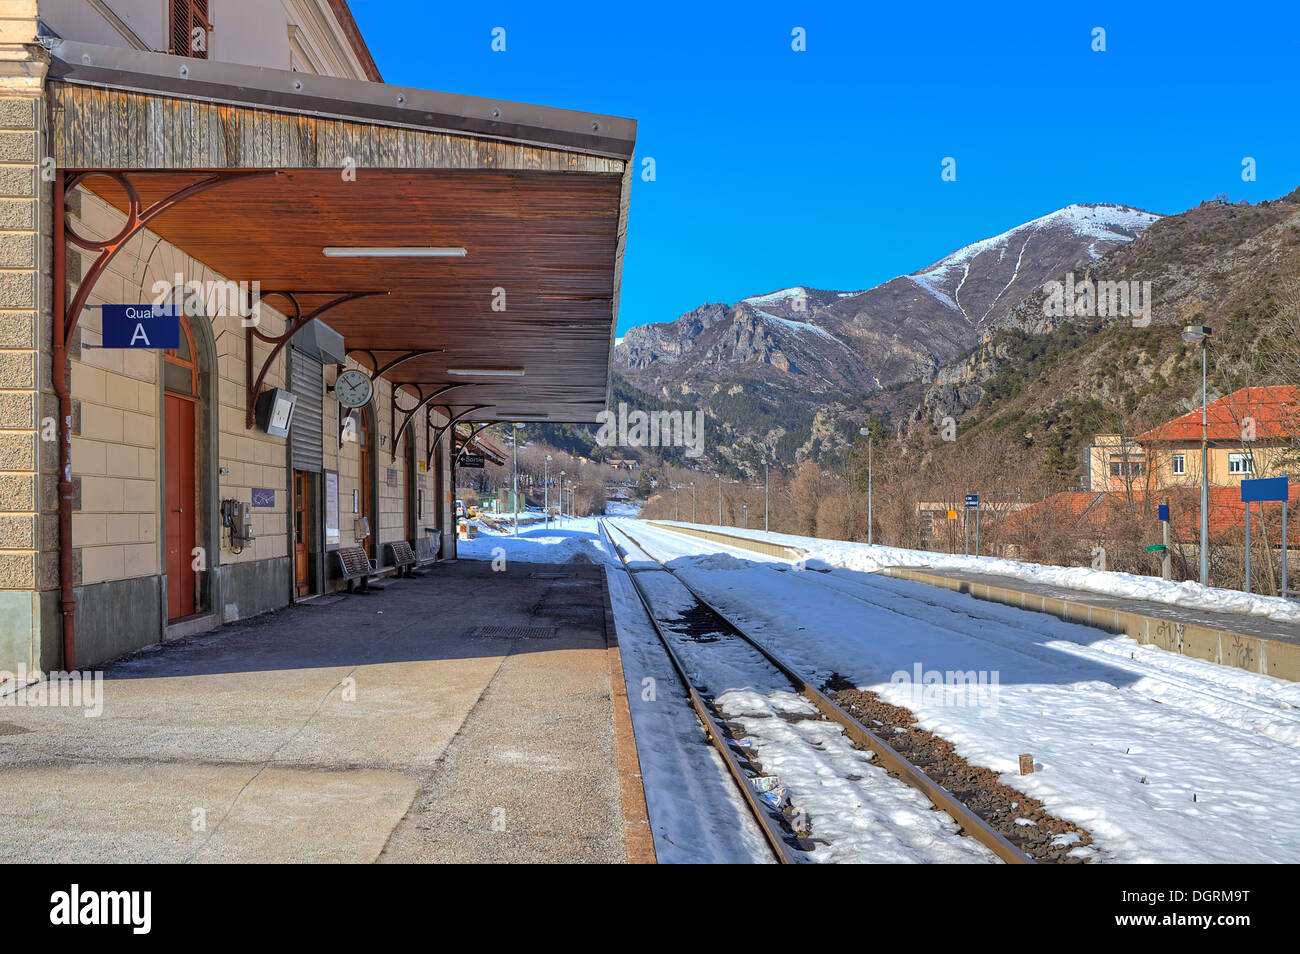 Rails covered with snow along empty platform on small railway station in the mountains. - Stock Image